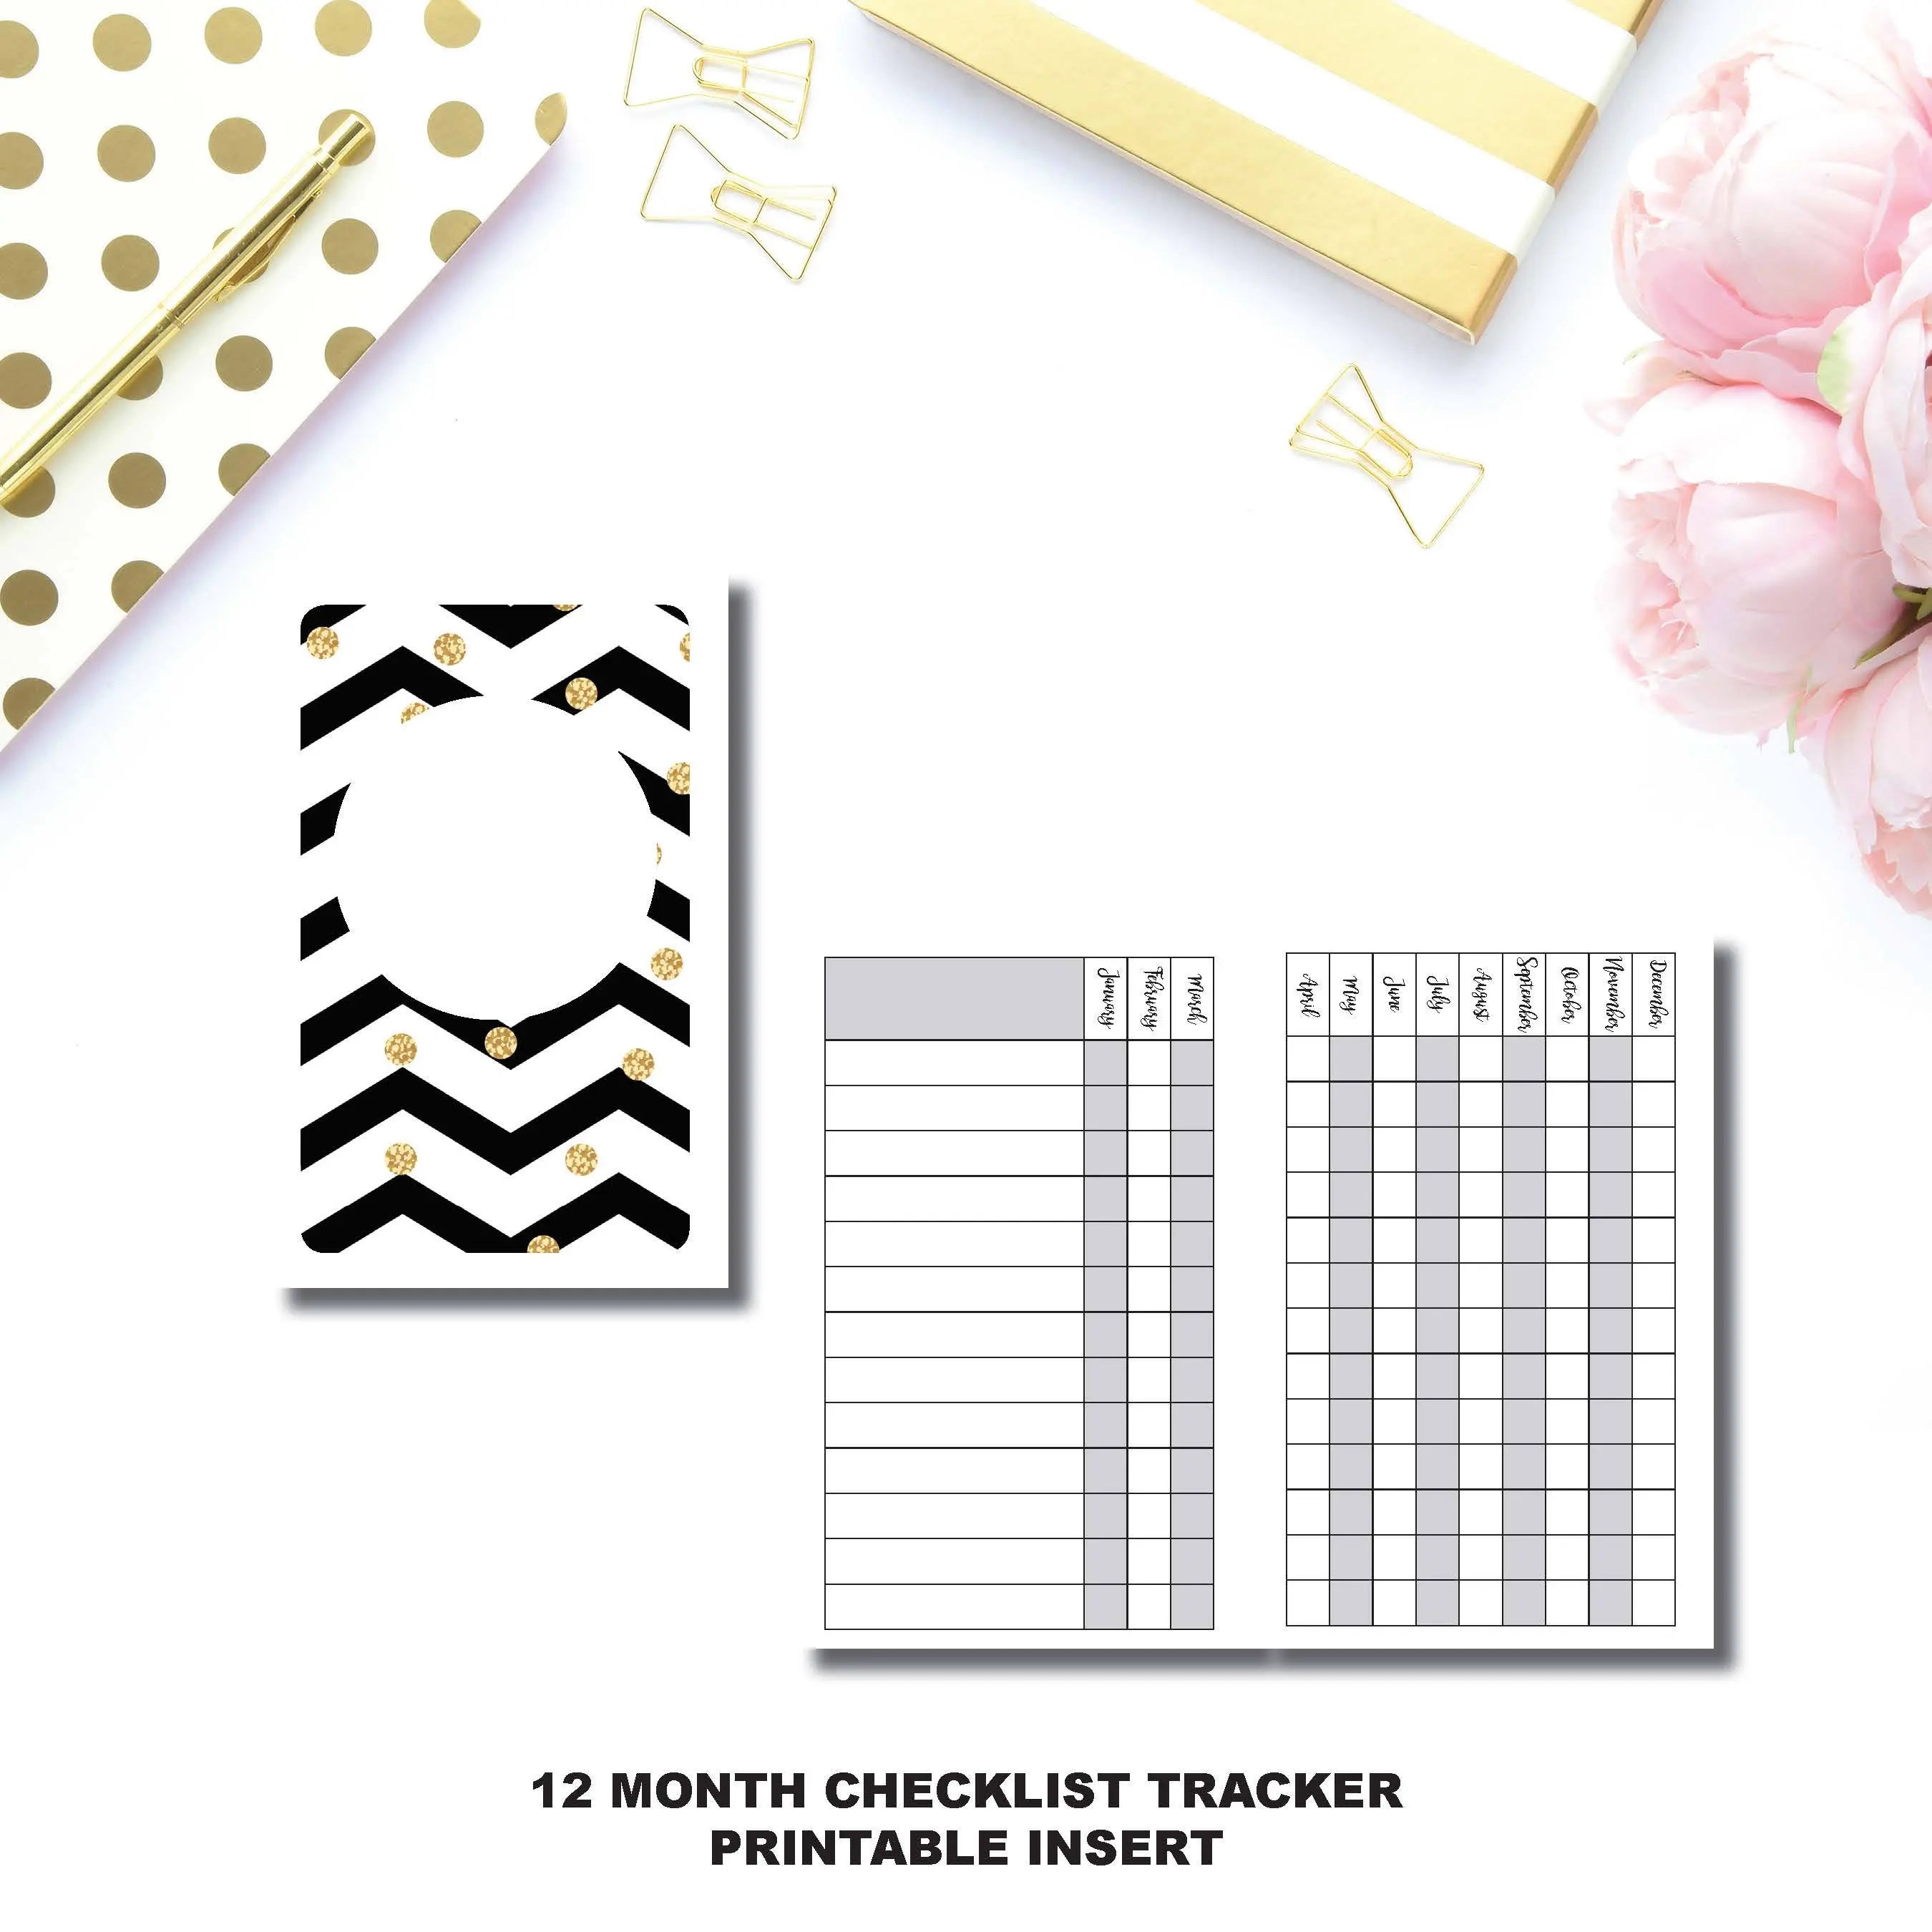 B6 Size 12 Month Checklist Tracker Printable Insert